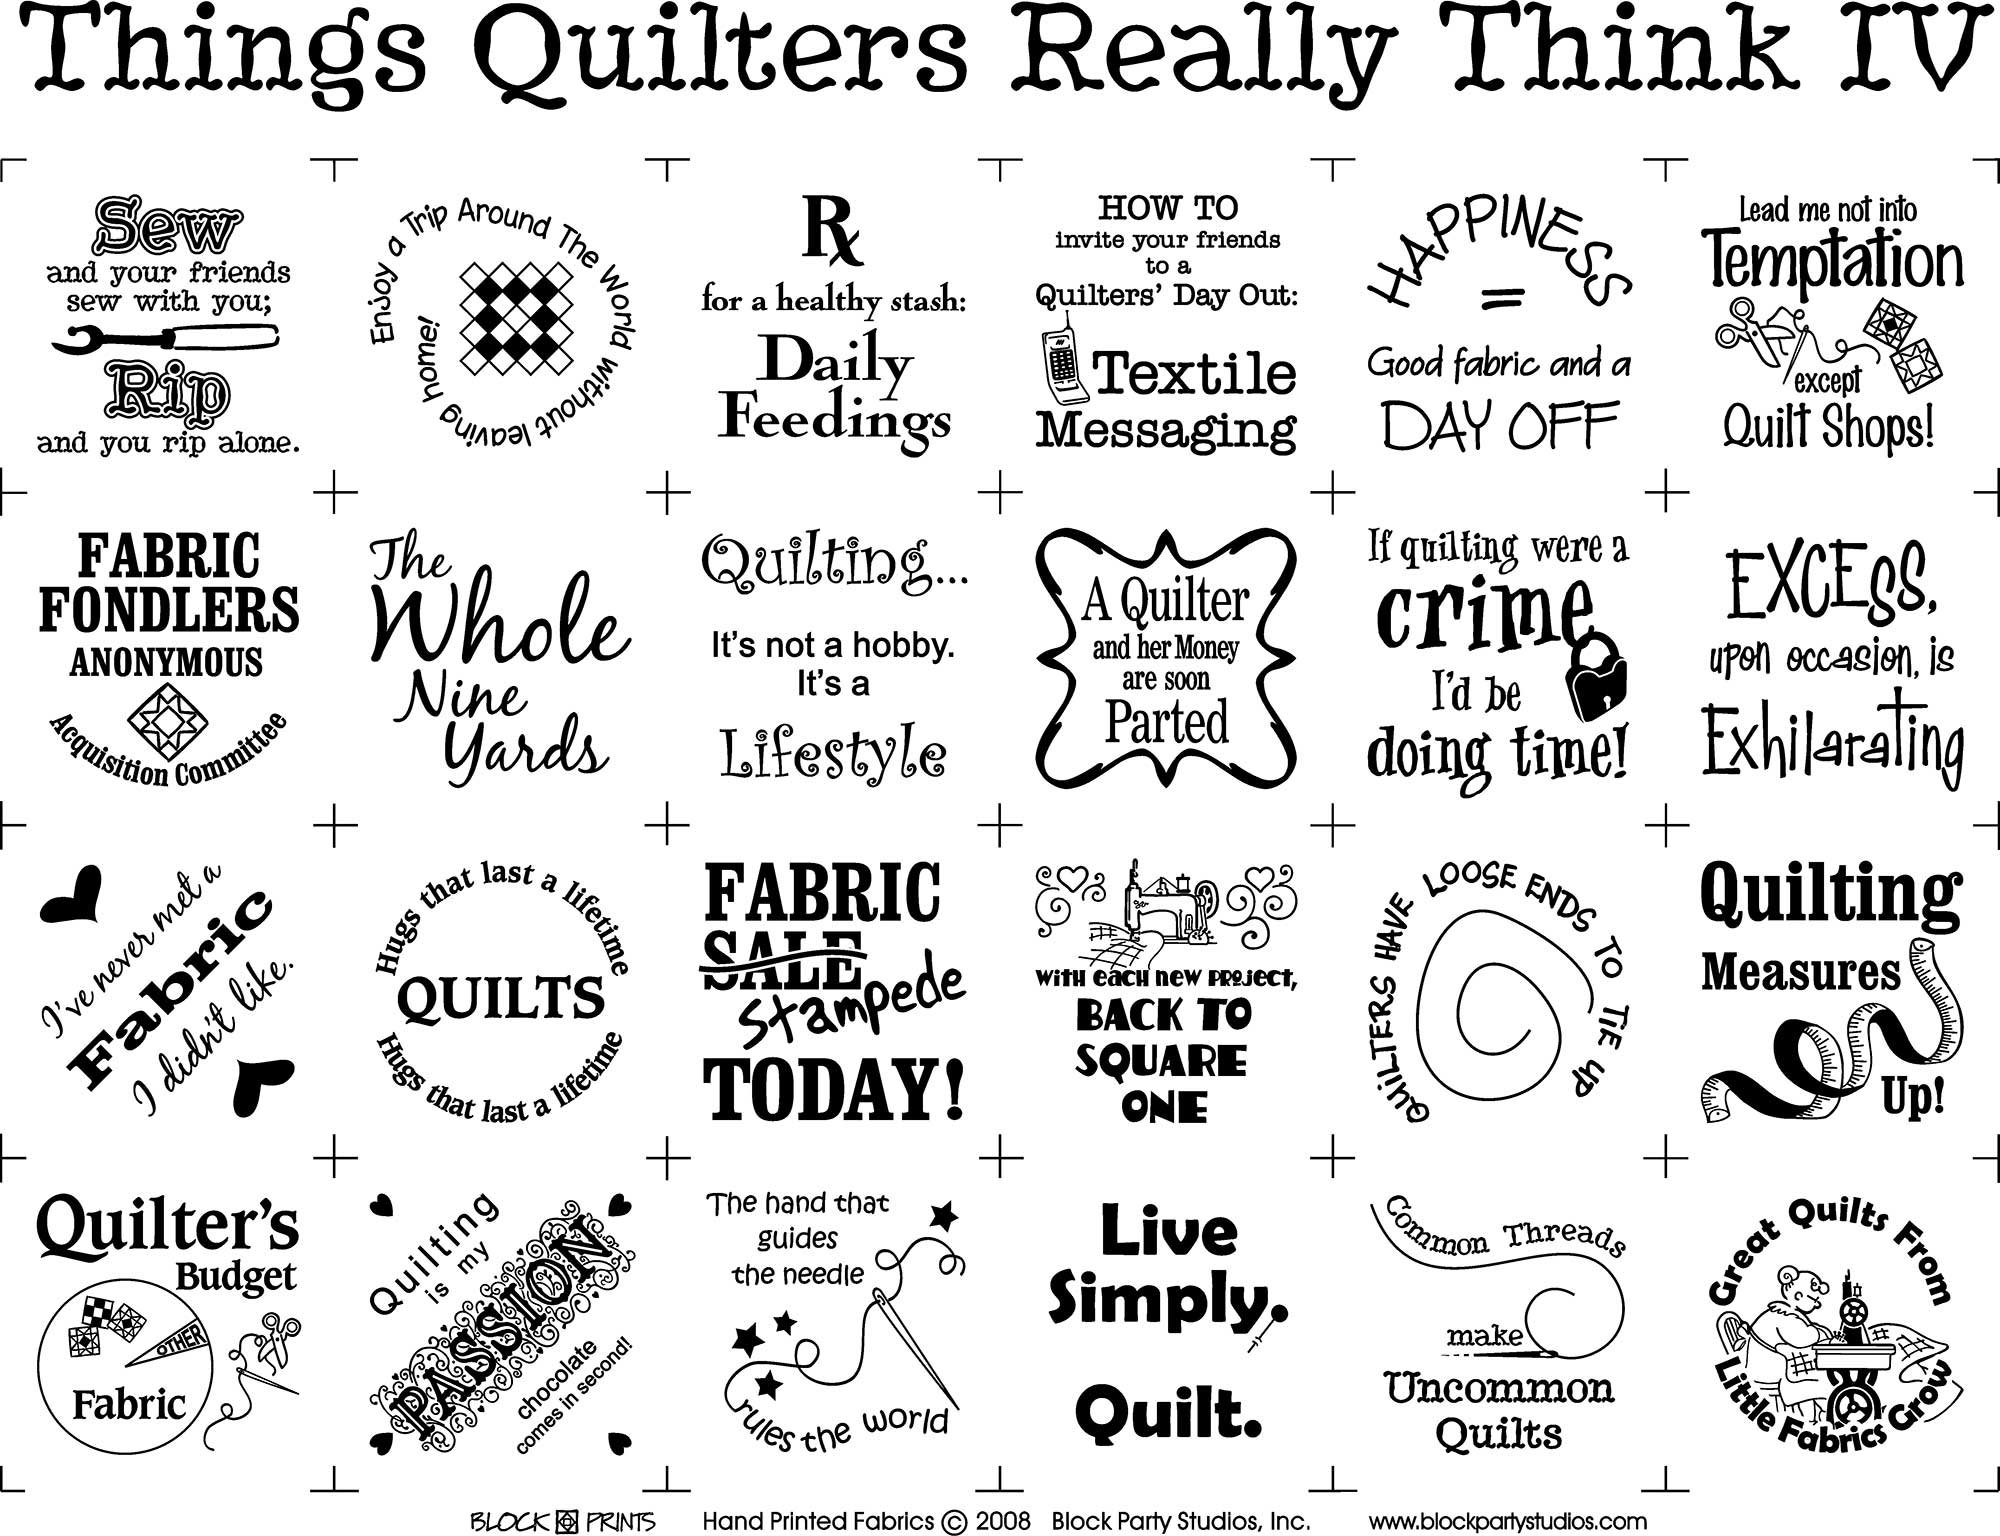 Things Quilters Really Think IV Panel